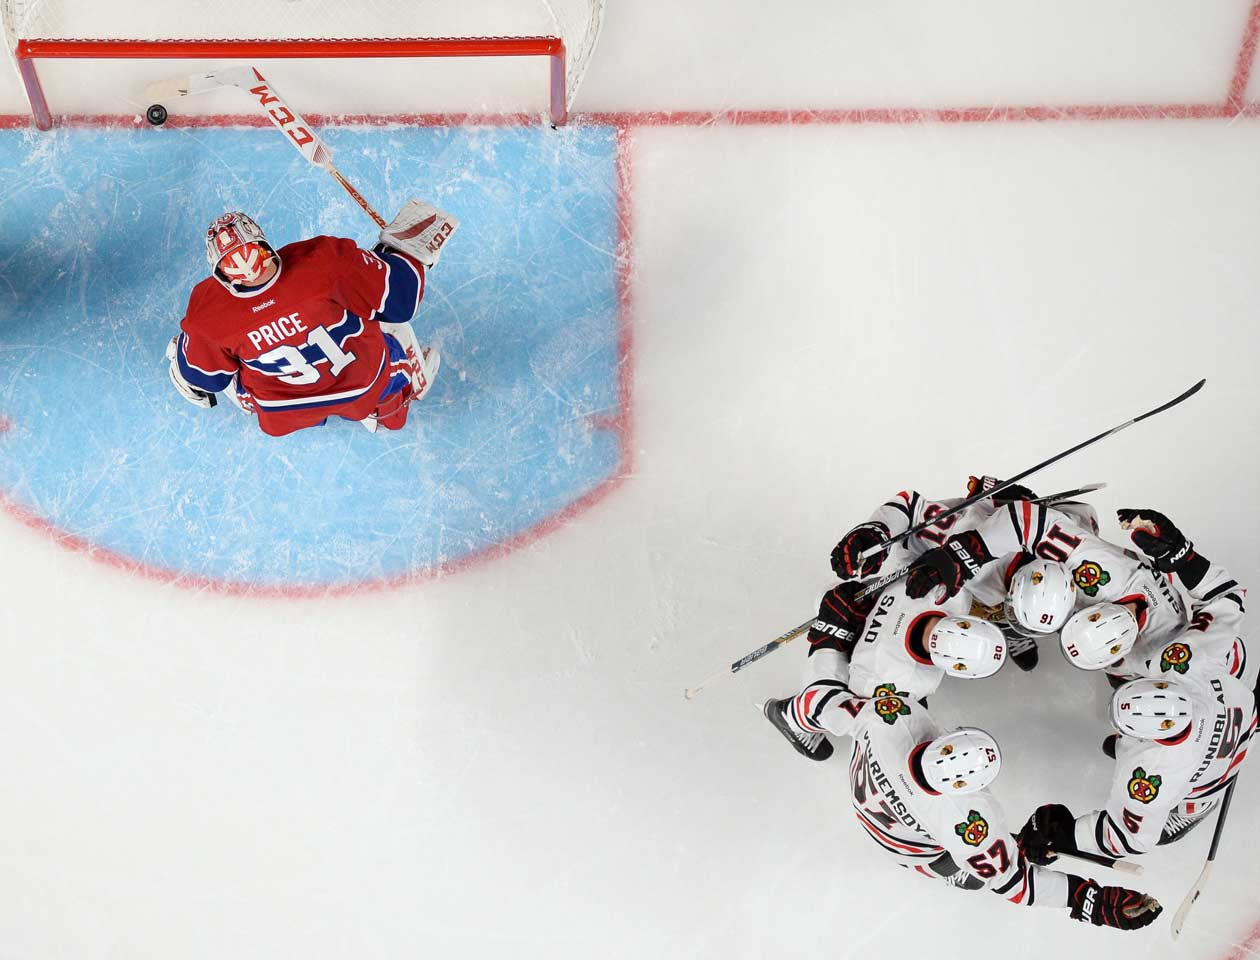 After a two-day stint in fifth place in the Central (and 10th in the West), the Blackhawks rout the Canadiens by ringing up five goals on 32 shots against Vezina Trophy candidate Carey Price. Chicago will never go as low in the standings again during the season.